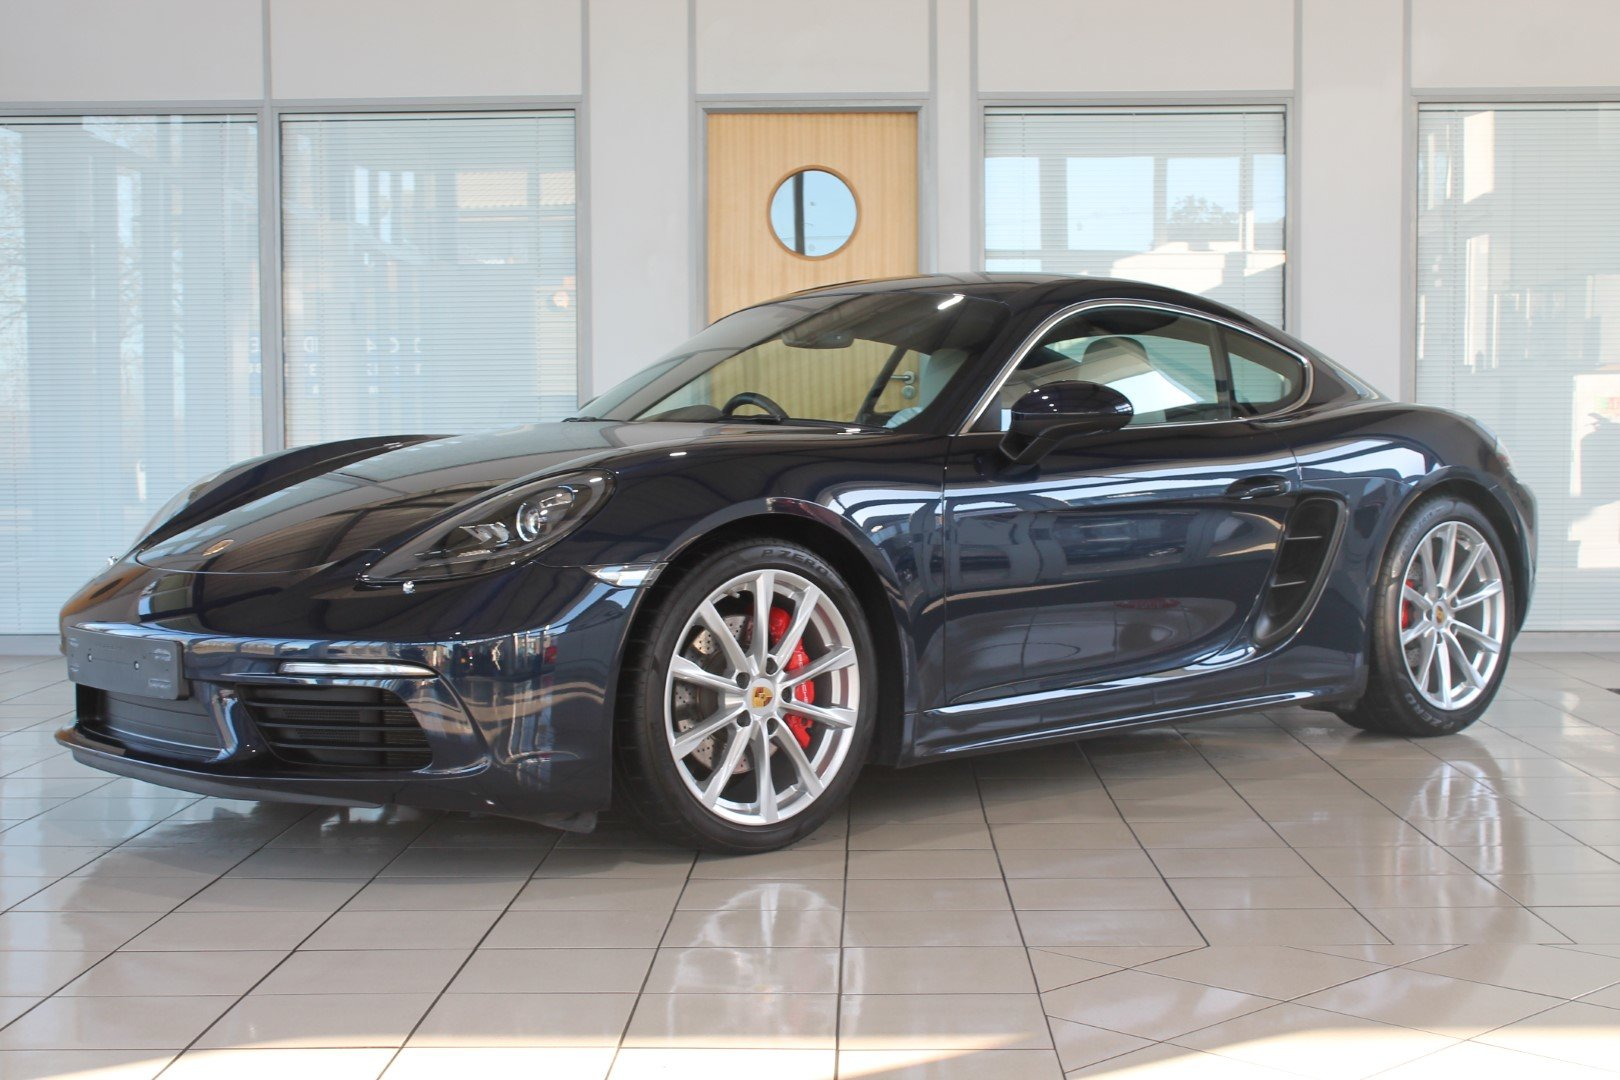 2016 Porsche Cayman (718) 2.5 S PDK - NOW SOLD - MORE REQUIRED For Sale (picture 1 of 12)